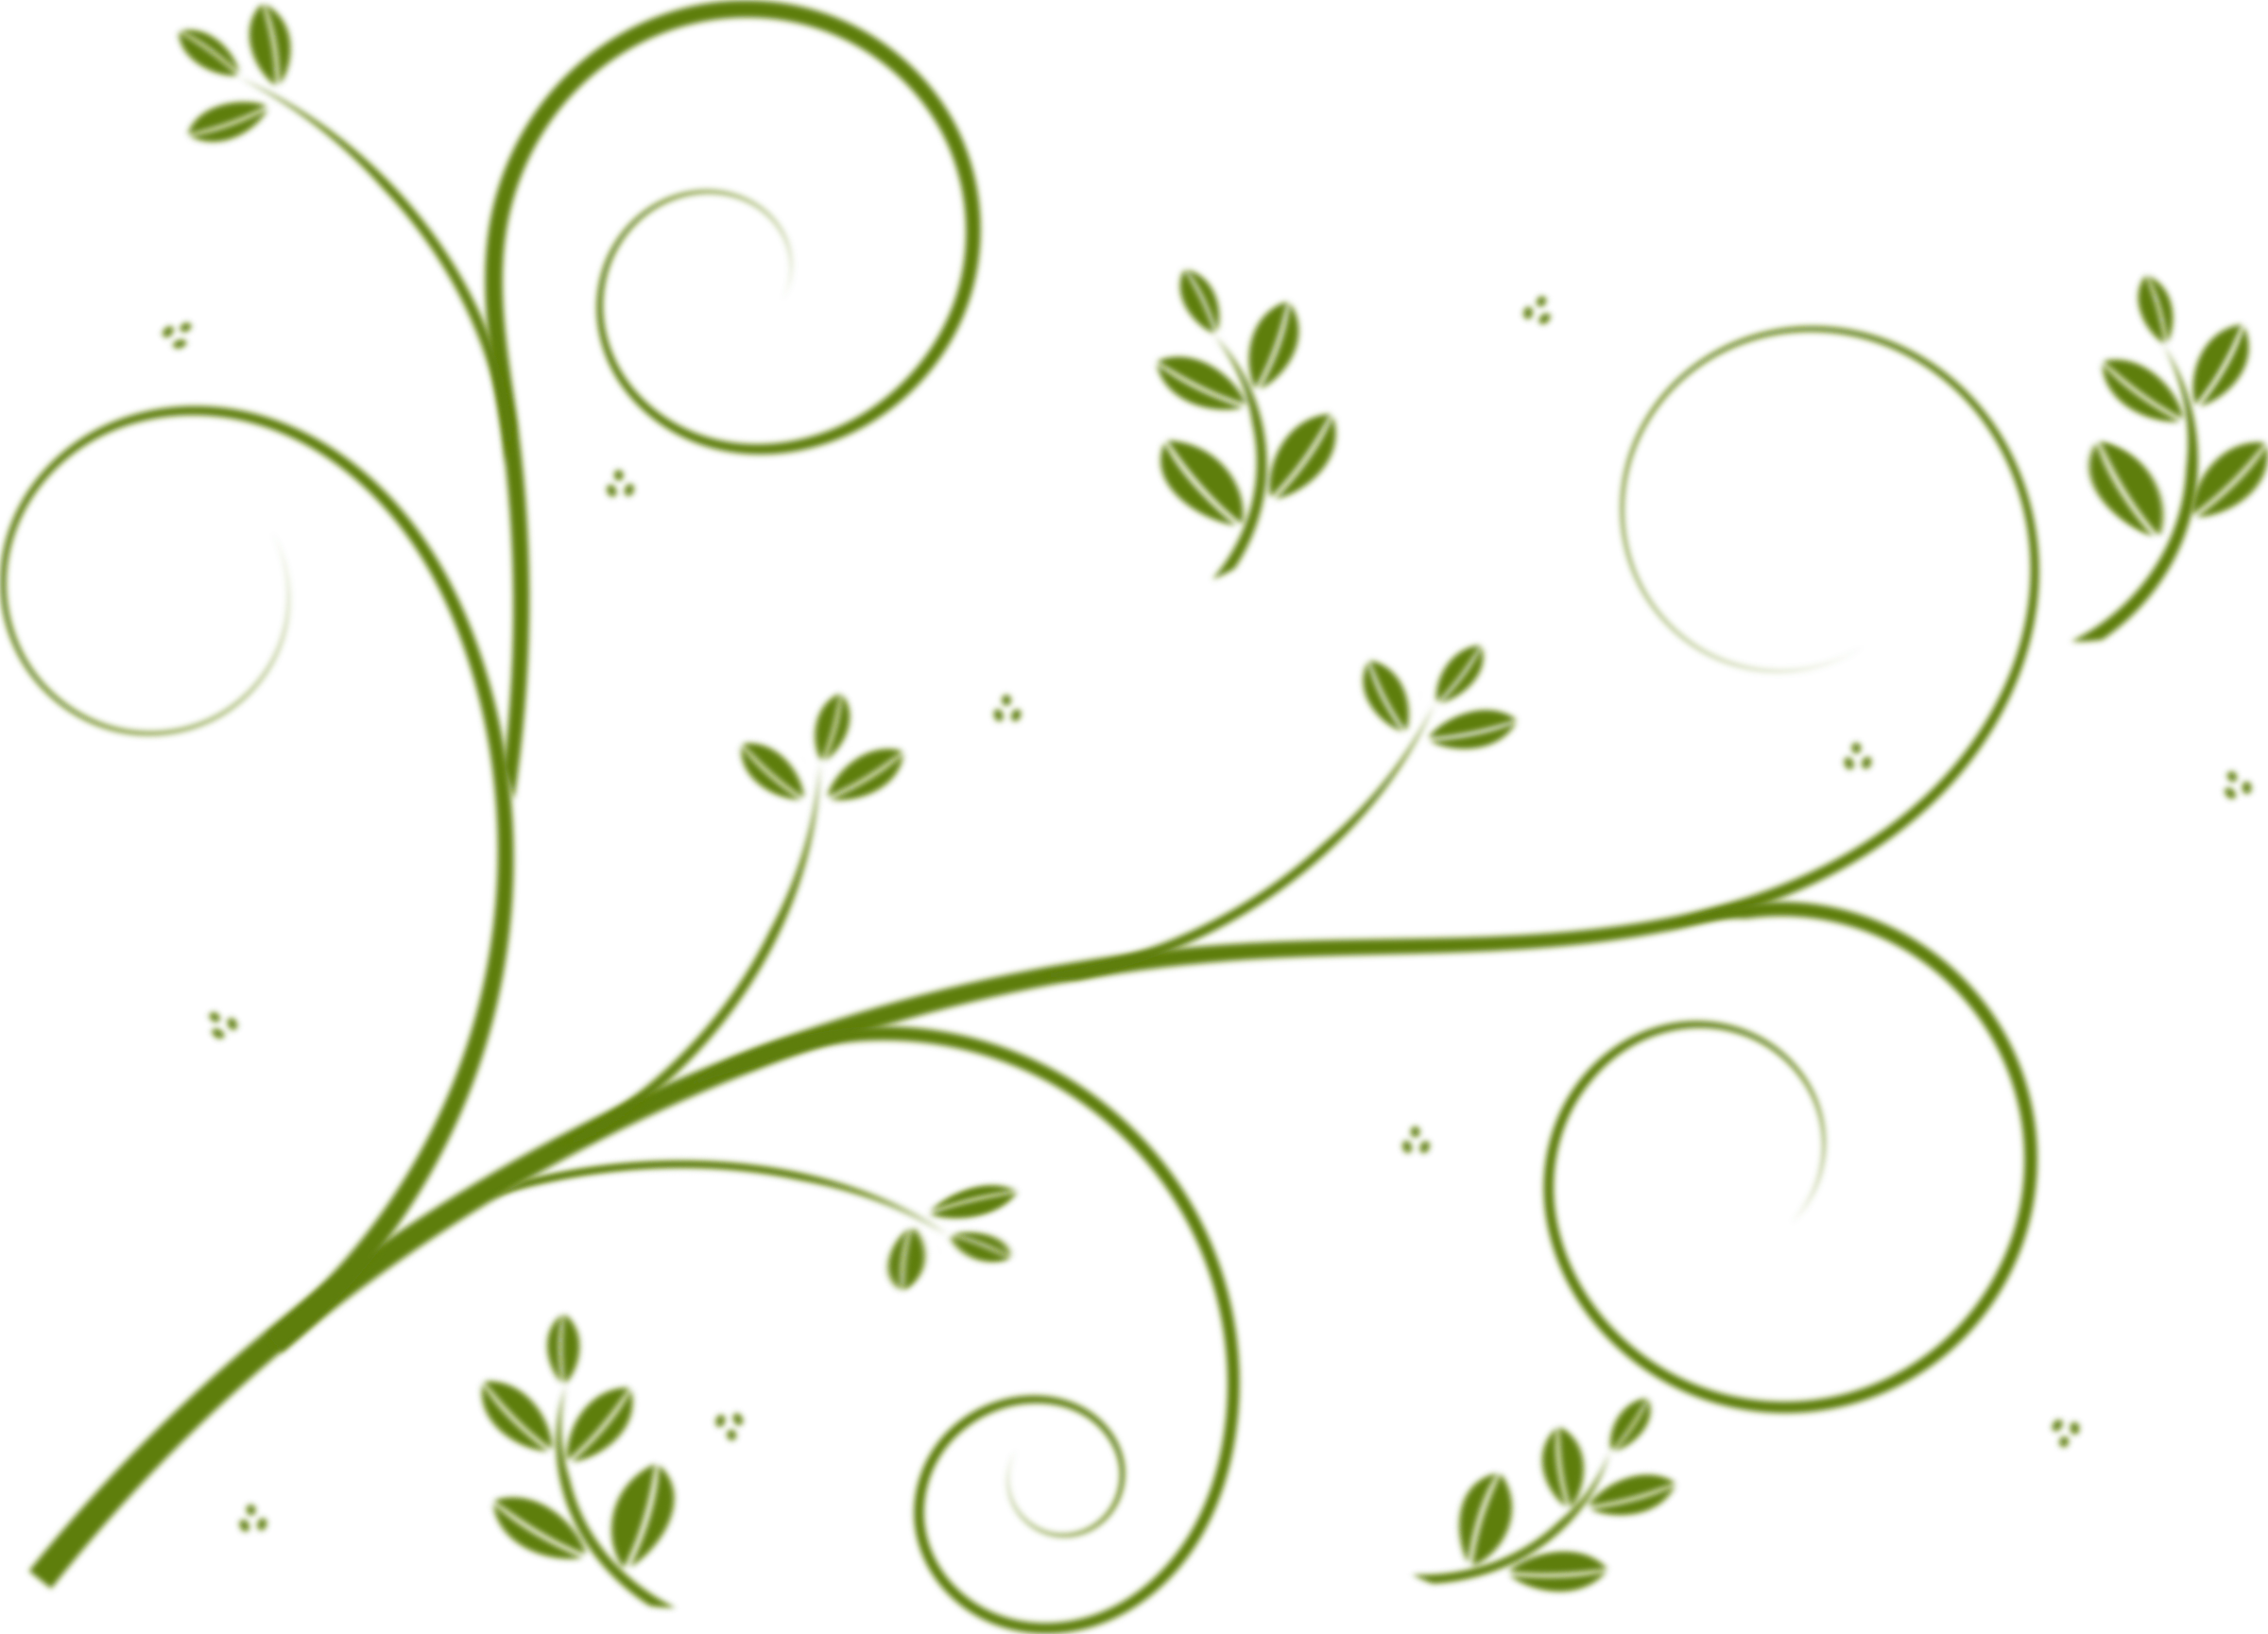 Flower vine clipart banner royalty free download Borders and Frames Vine Flower Drawing Clip art - green floral 2400 ... banner royalty free download